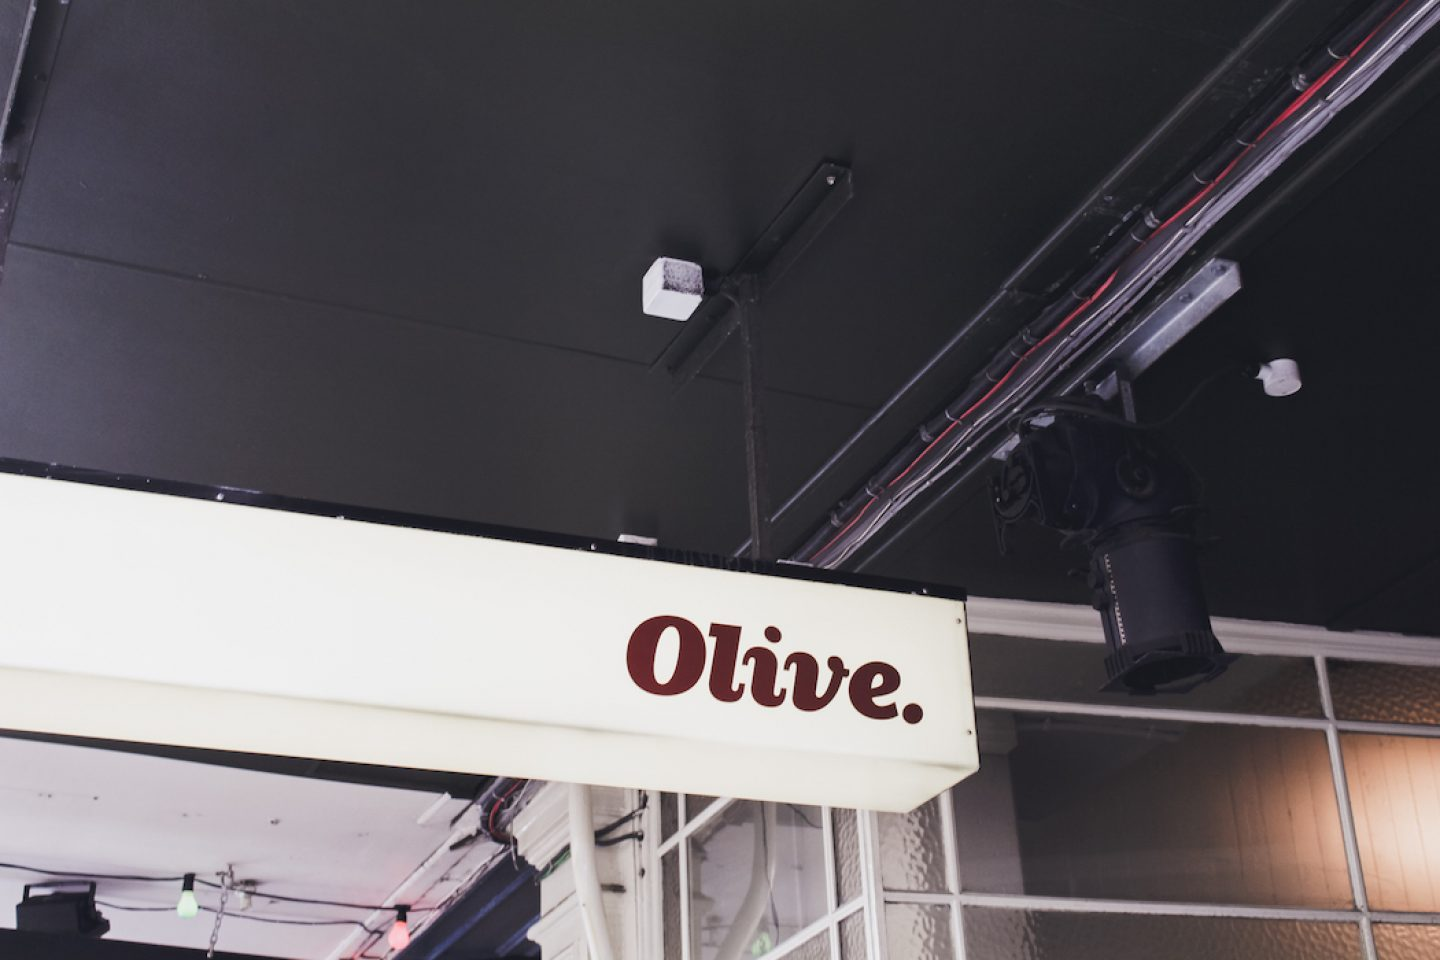 A_olive_001